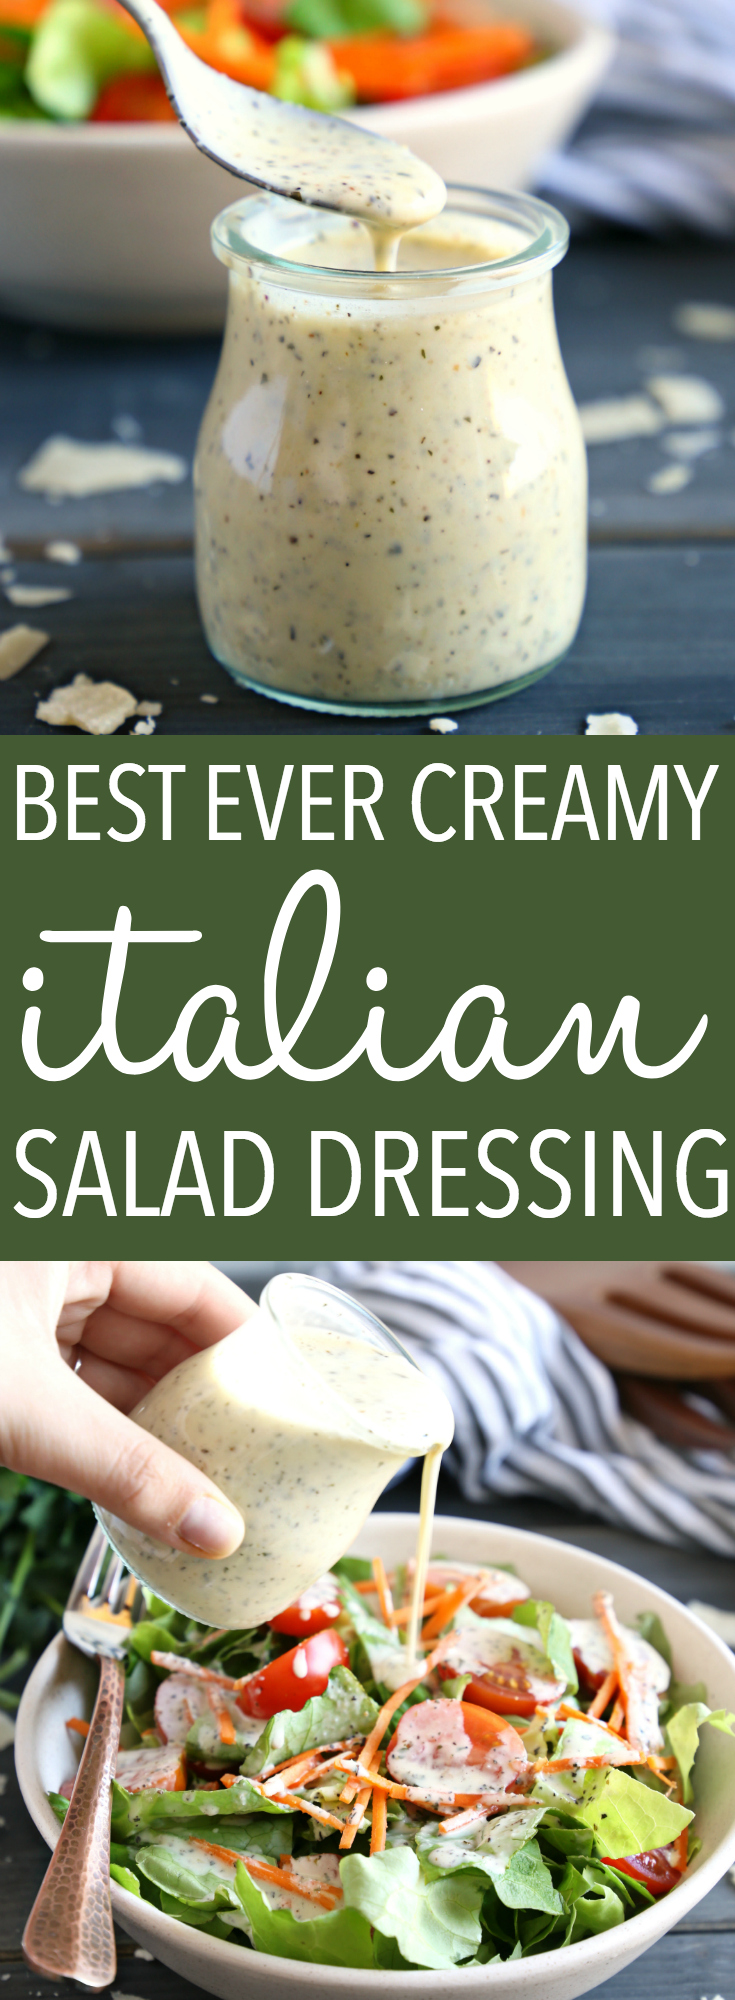 This Classic Creamy Italian Salad Dressing recipe is one for the books! It's packed with delicious herbs and makes the perfect creamy addition to any garden salad! And it's SO easy to make and healthy too! Recipe from thebusybaker.ca! #saladdressing #salad #easyrecipe #italian #fresh #homemade #masonjar #blender #dressing #dip #spread #condiment #herbs #parmesan #vegetarian #healthy #cleaneating